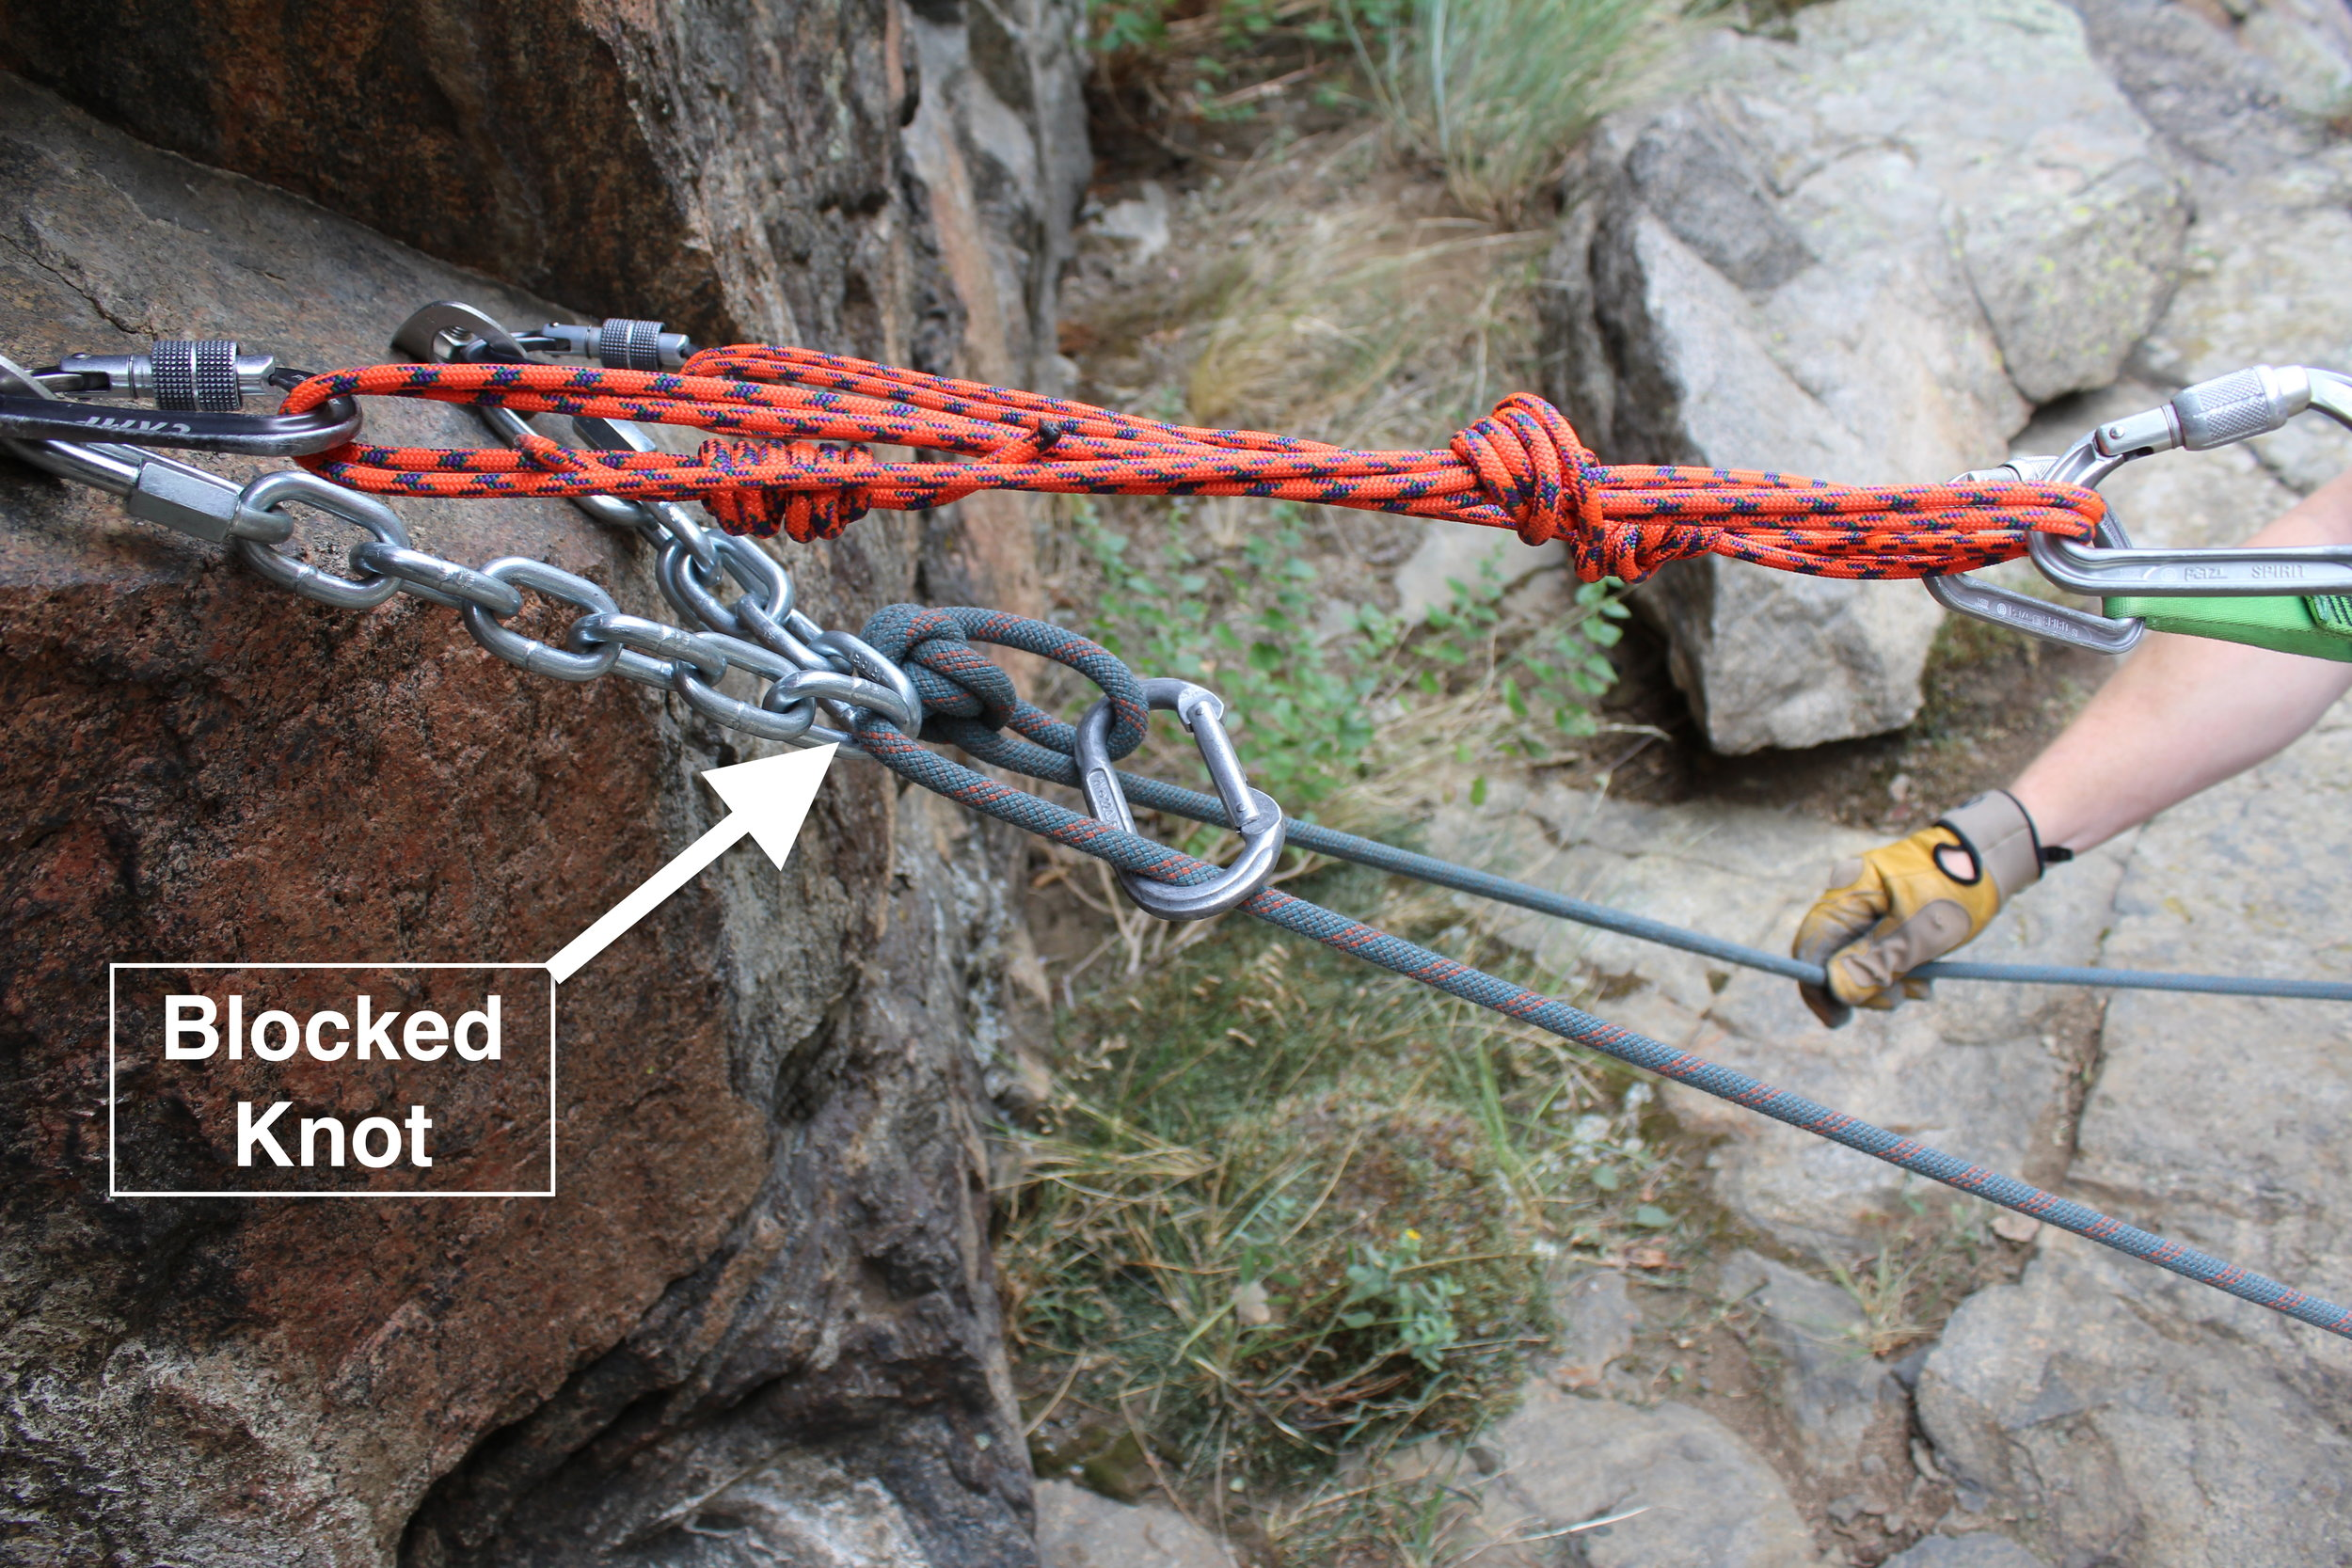 Blocking a knot isolates at least one of the rappellers from the consequences of the counterweight arrangement.